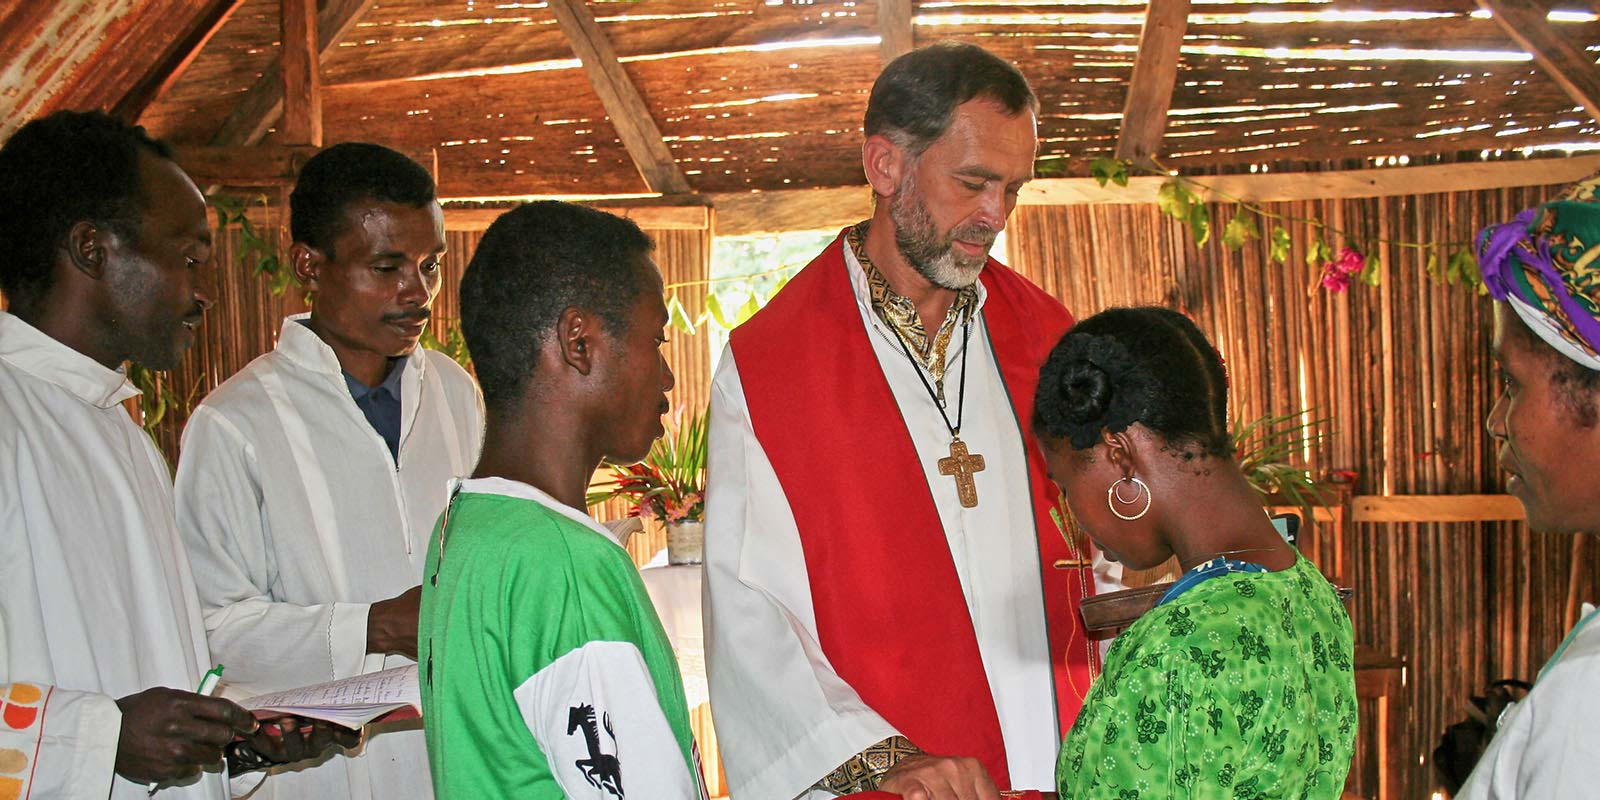 Father Czeslaw Sadecki performs wedding ceremony in Madagascar - Society of the Divine Word Chicago Province